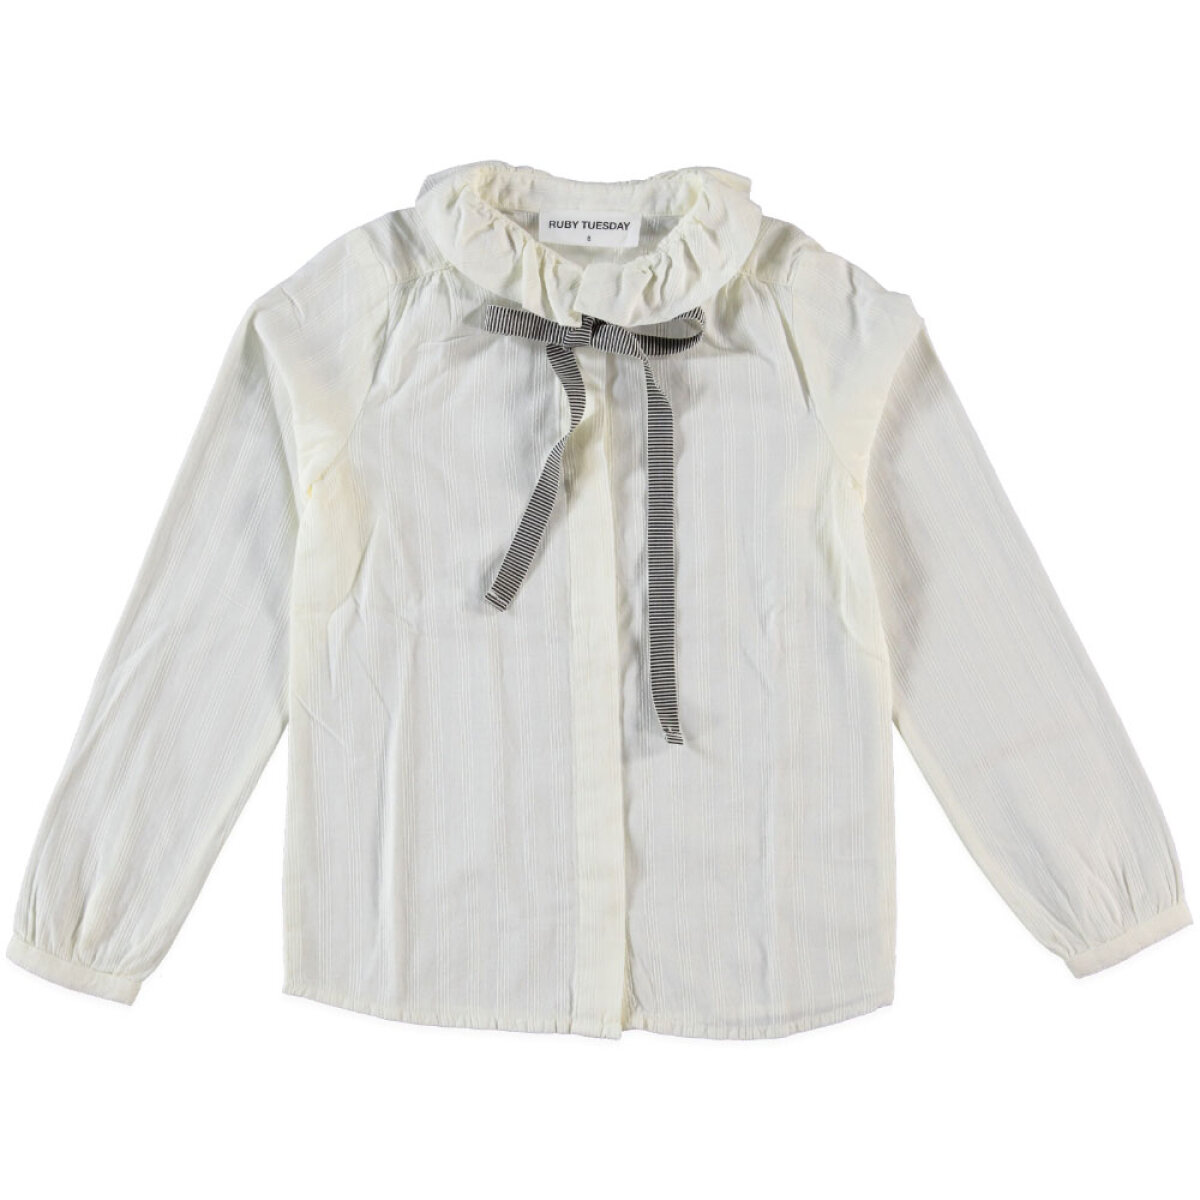 Ruby Tuesday blouse (va.116)